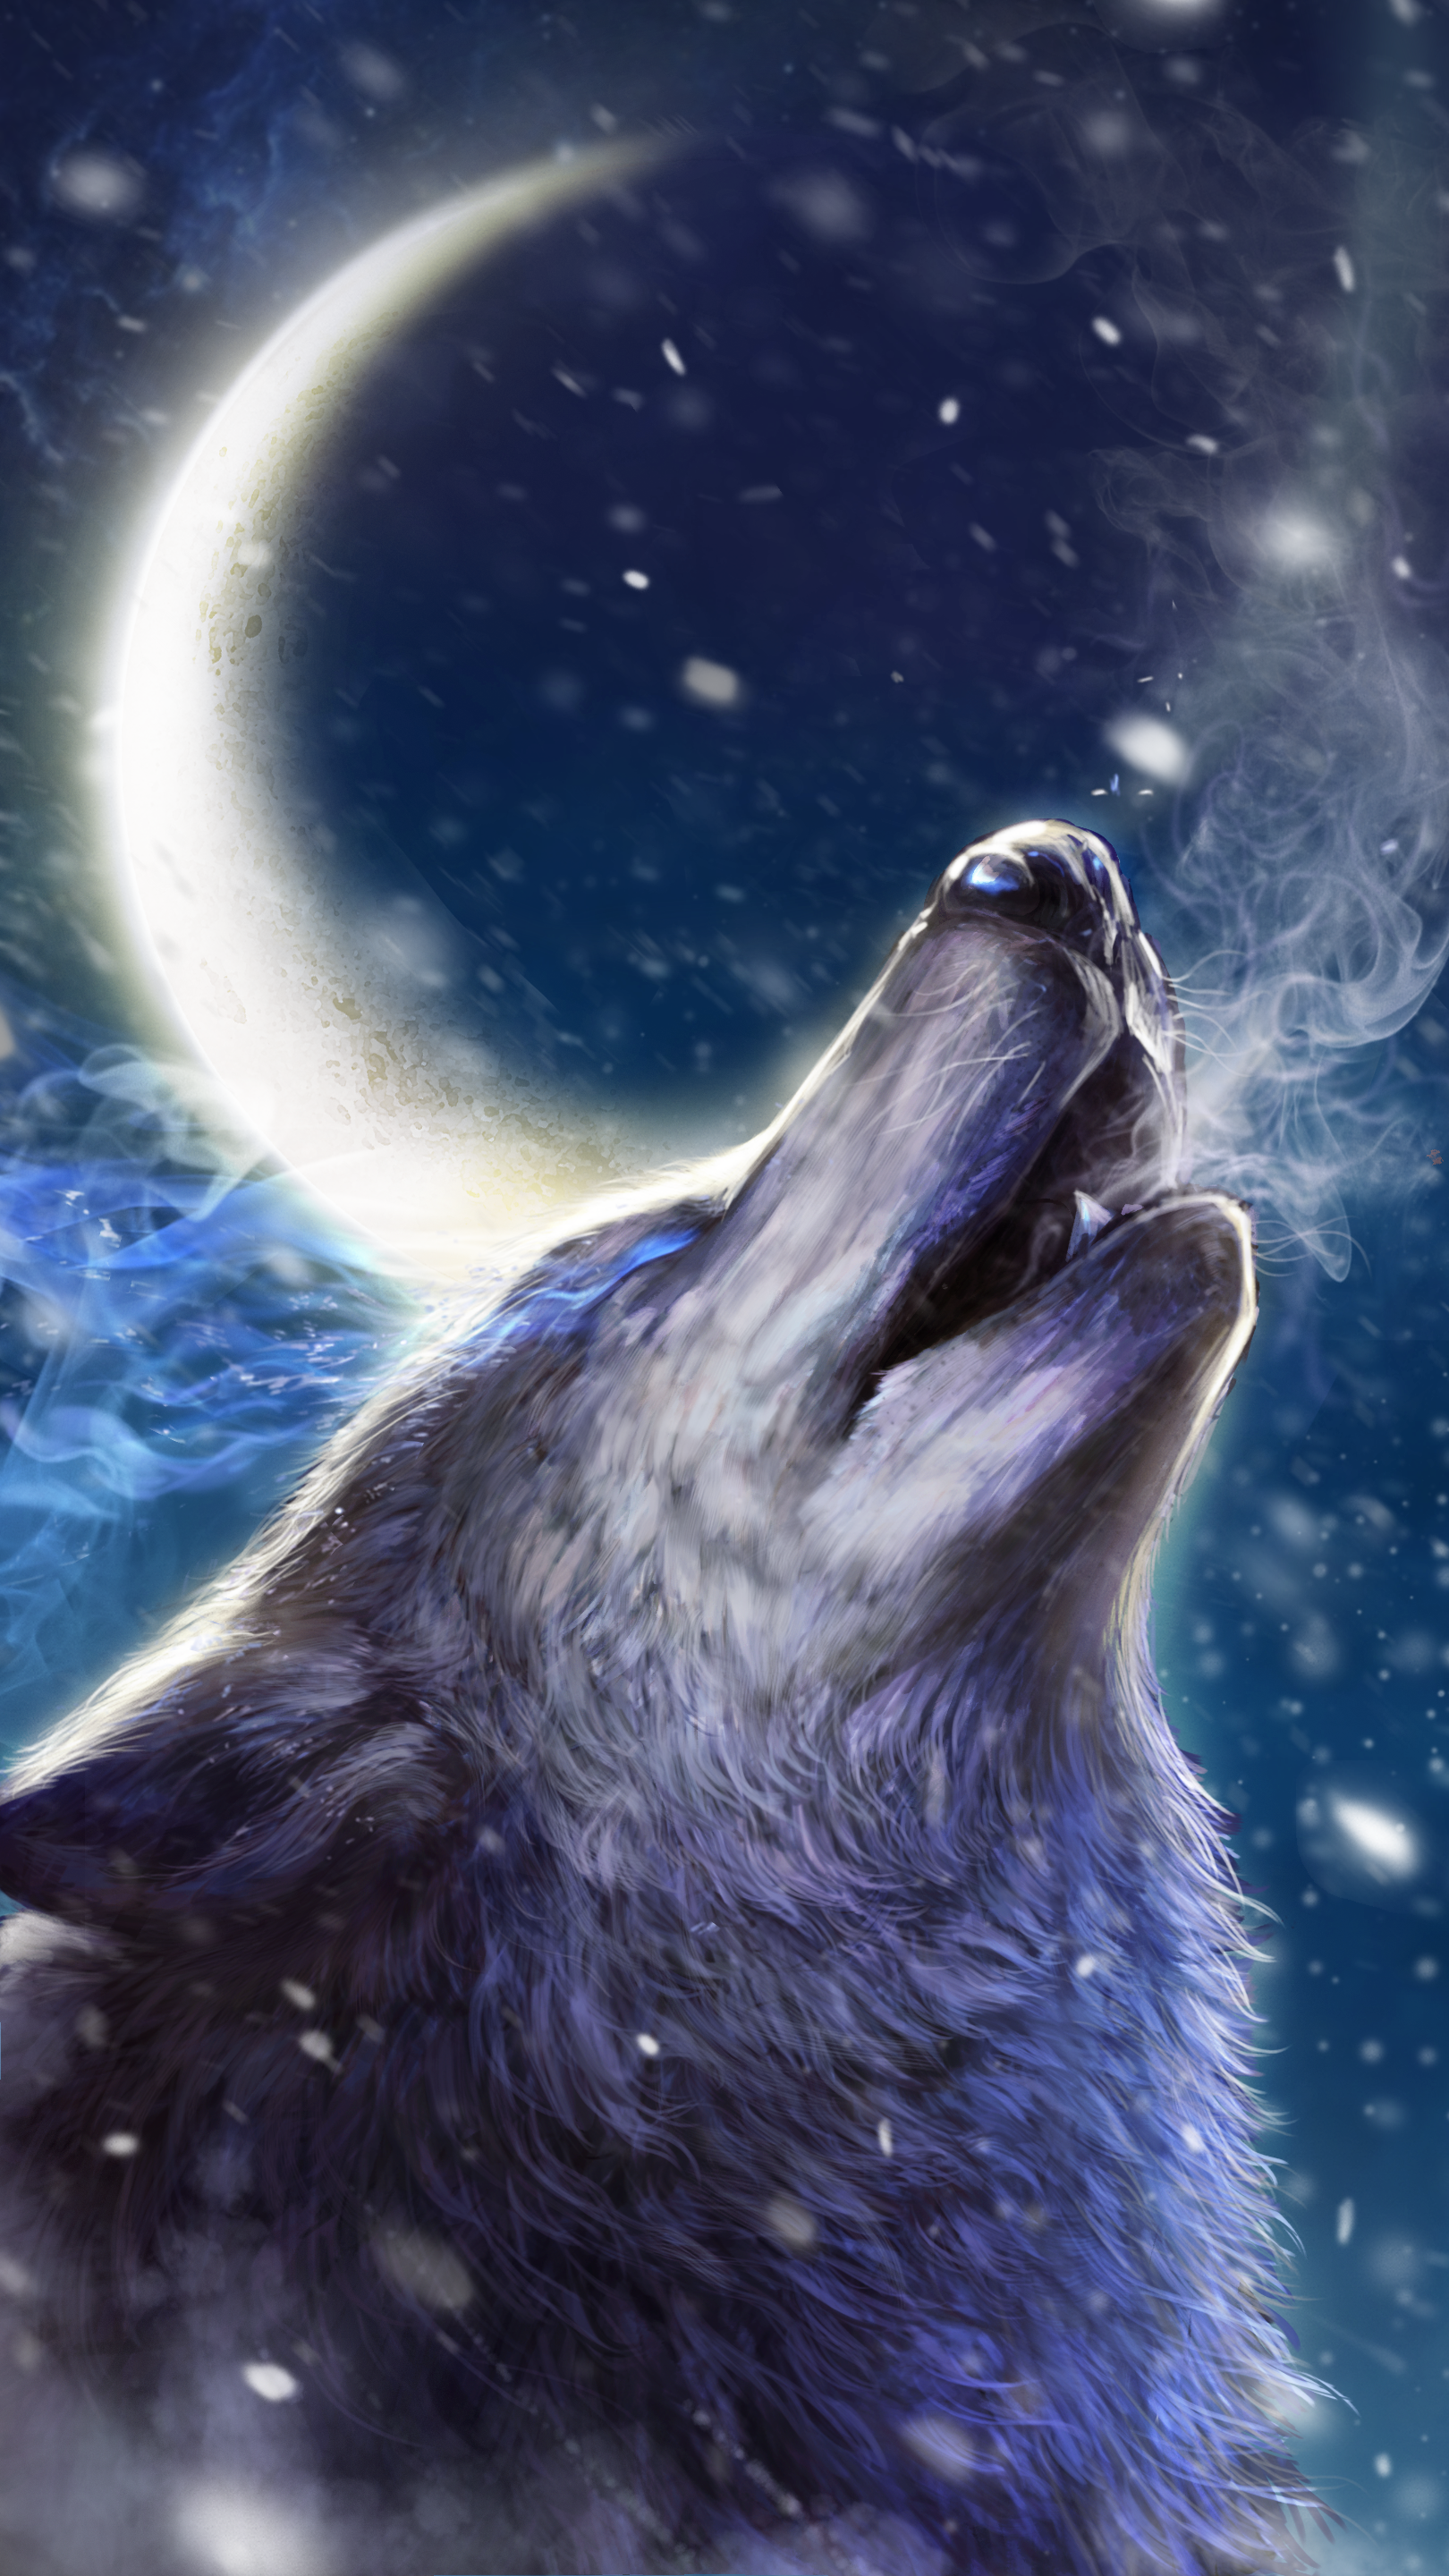 Howling wolf live wallpaper!   Android live wallpapers from Ahatheme in 2019   Pinterest   Wolf ...